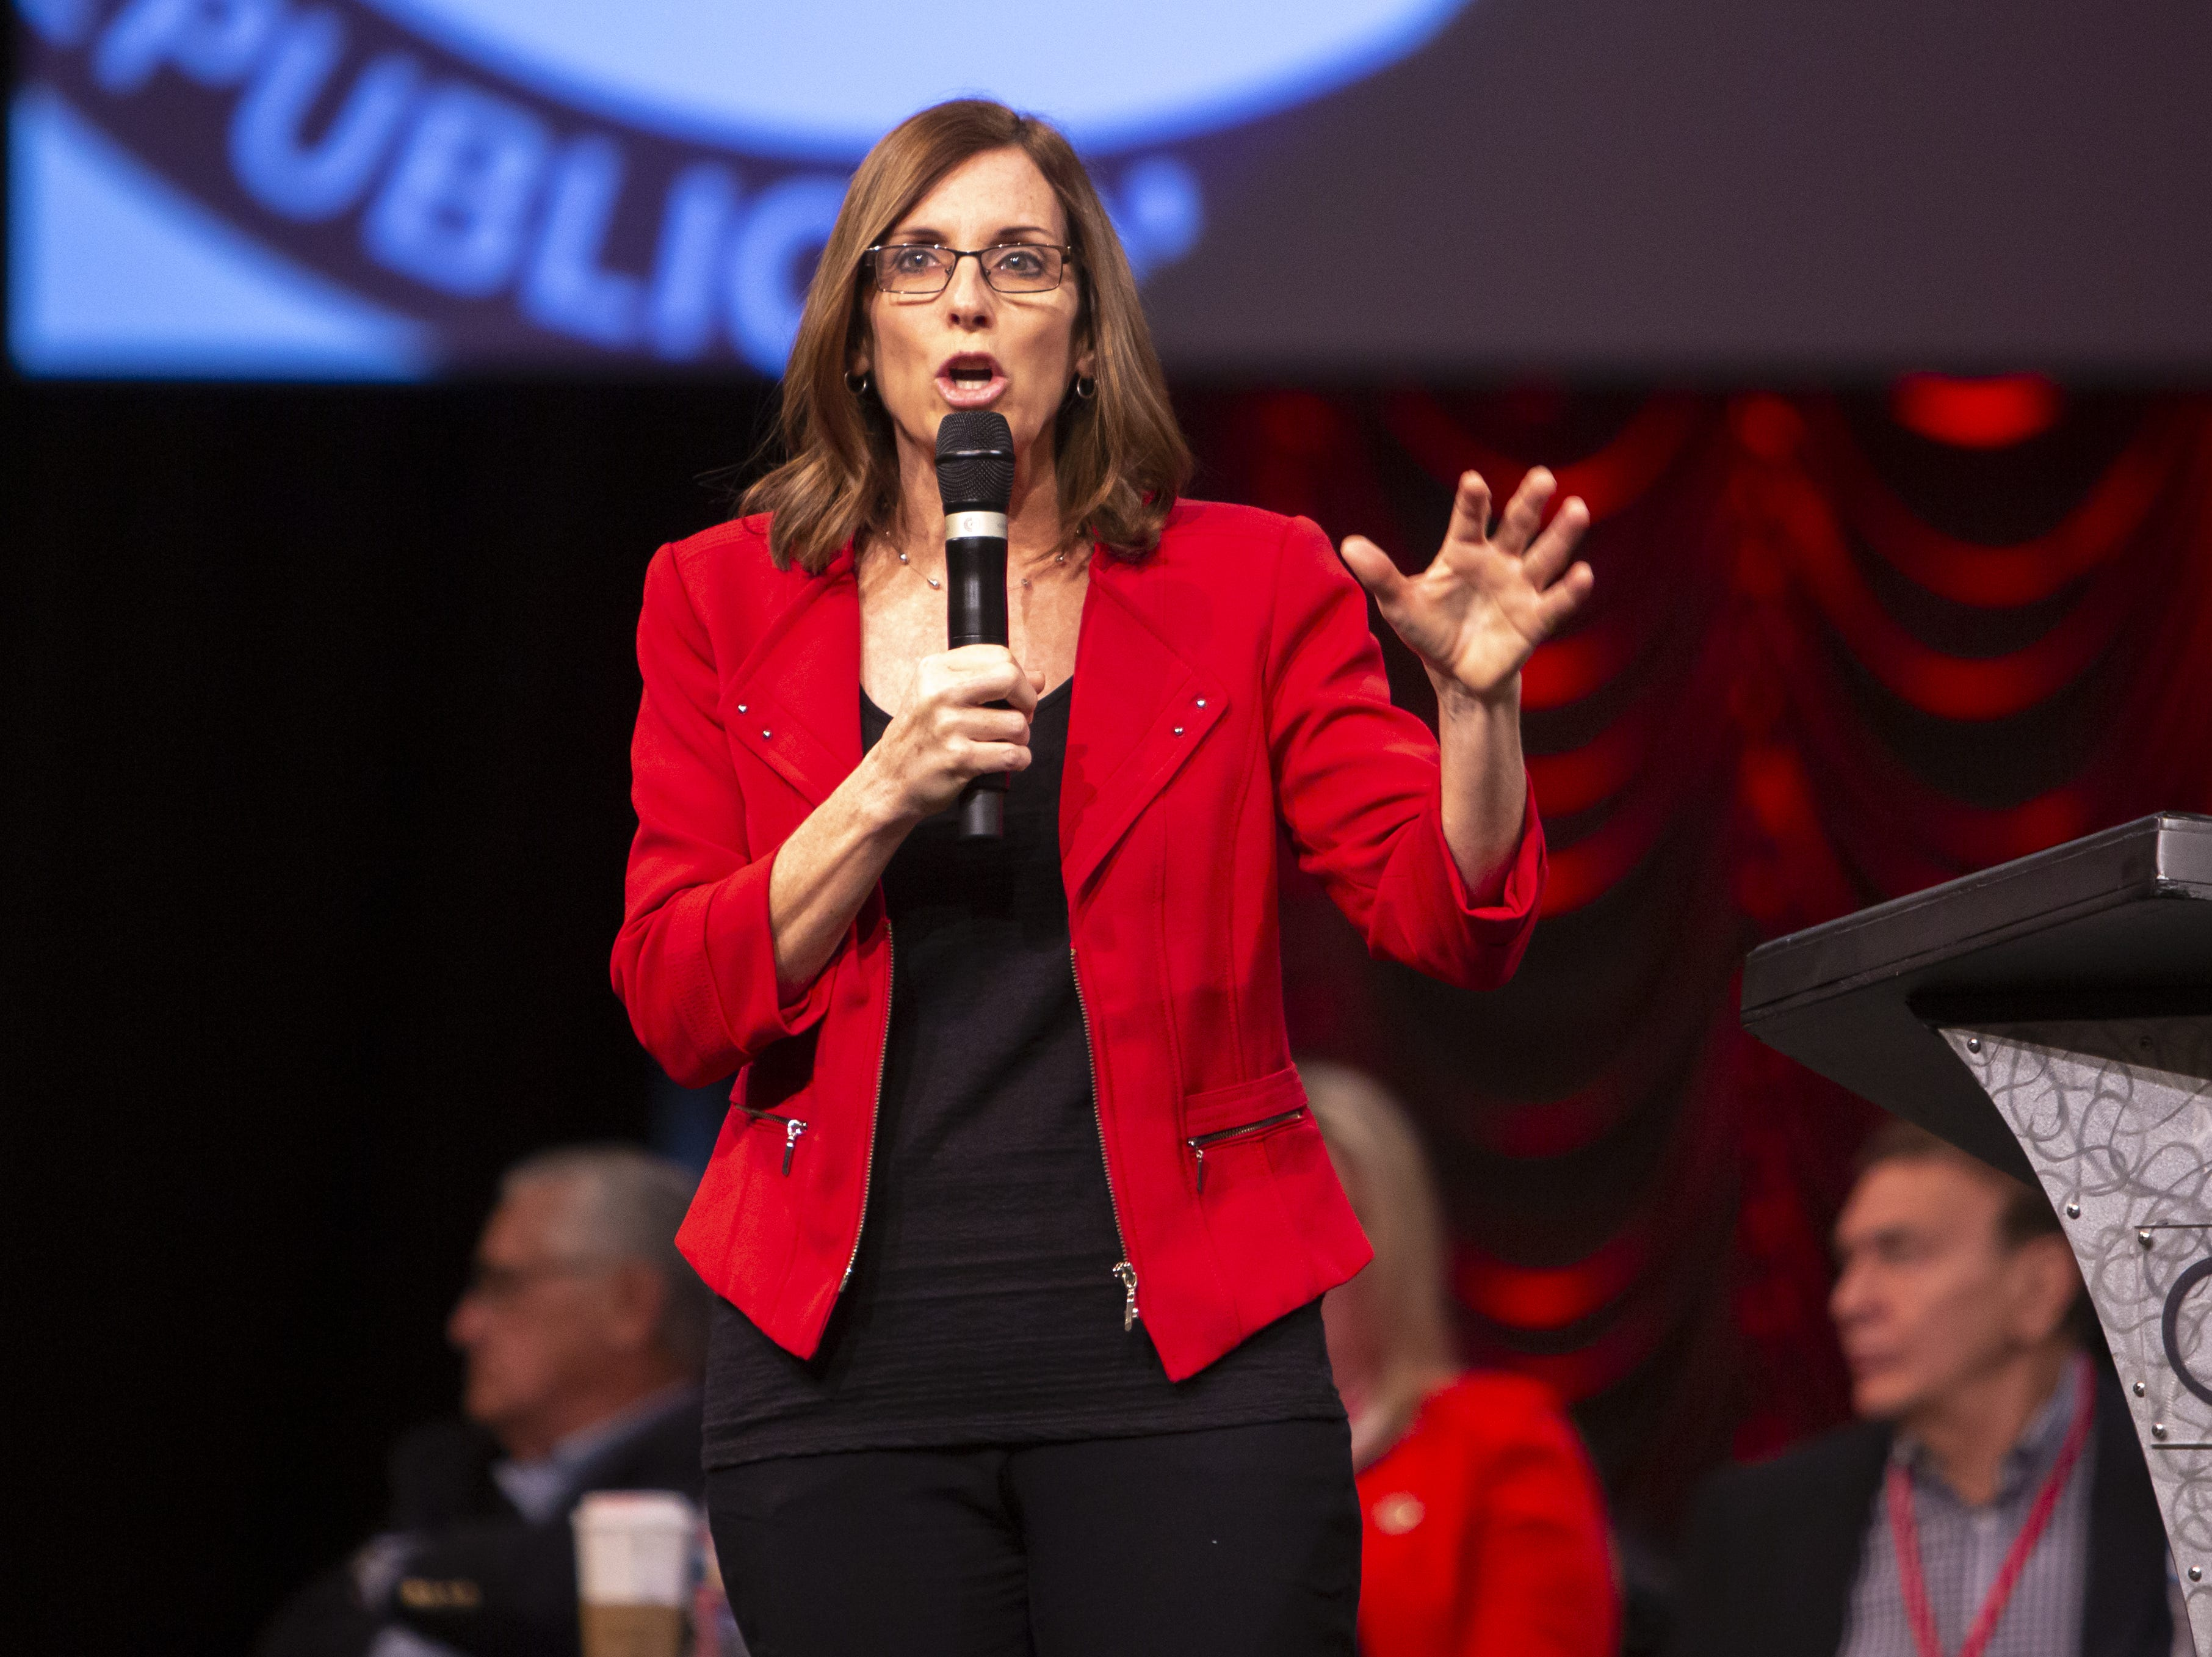 Sen. Martha McSally speaks during the Statutory Meeting of the State Committee of the Arizona Republican Party at Church for the Nations on Saturday, Jan. 26, 2019.